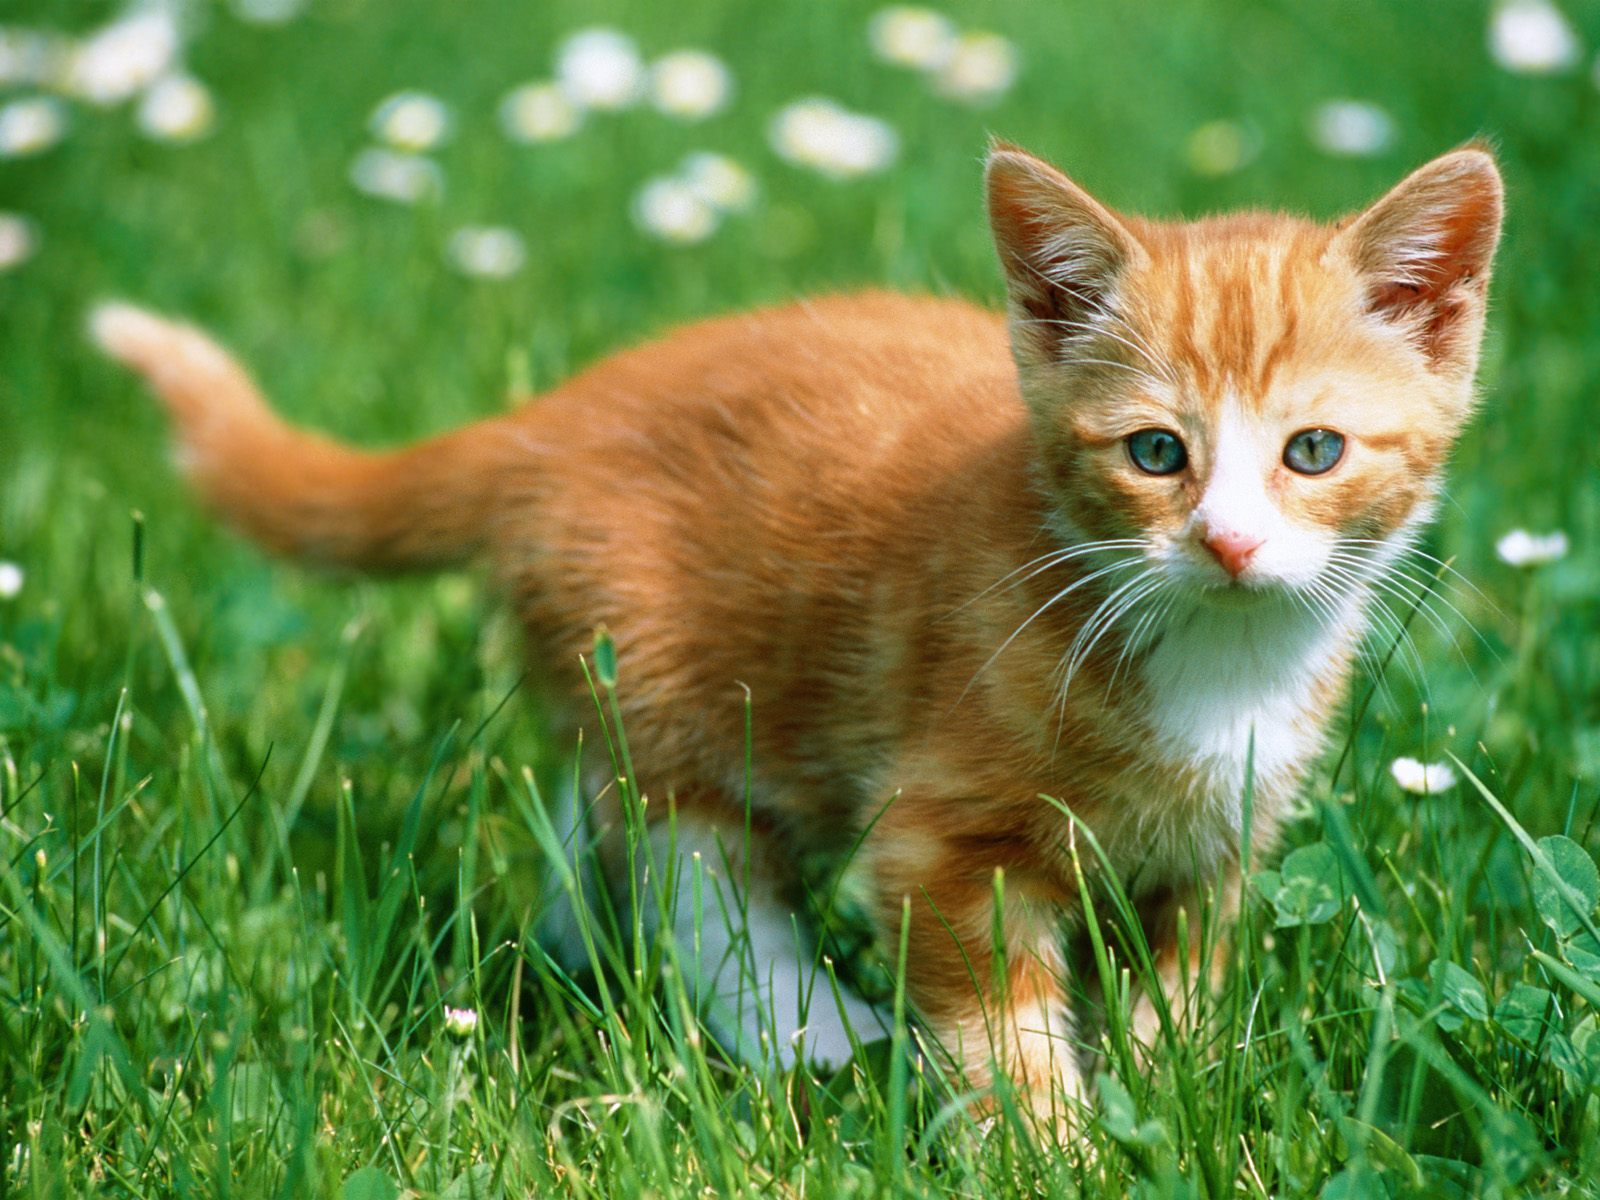 Cute Kittens Wallpapers - Wallpapers